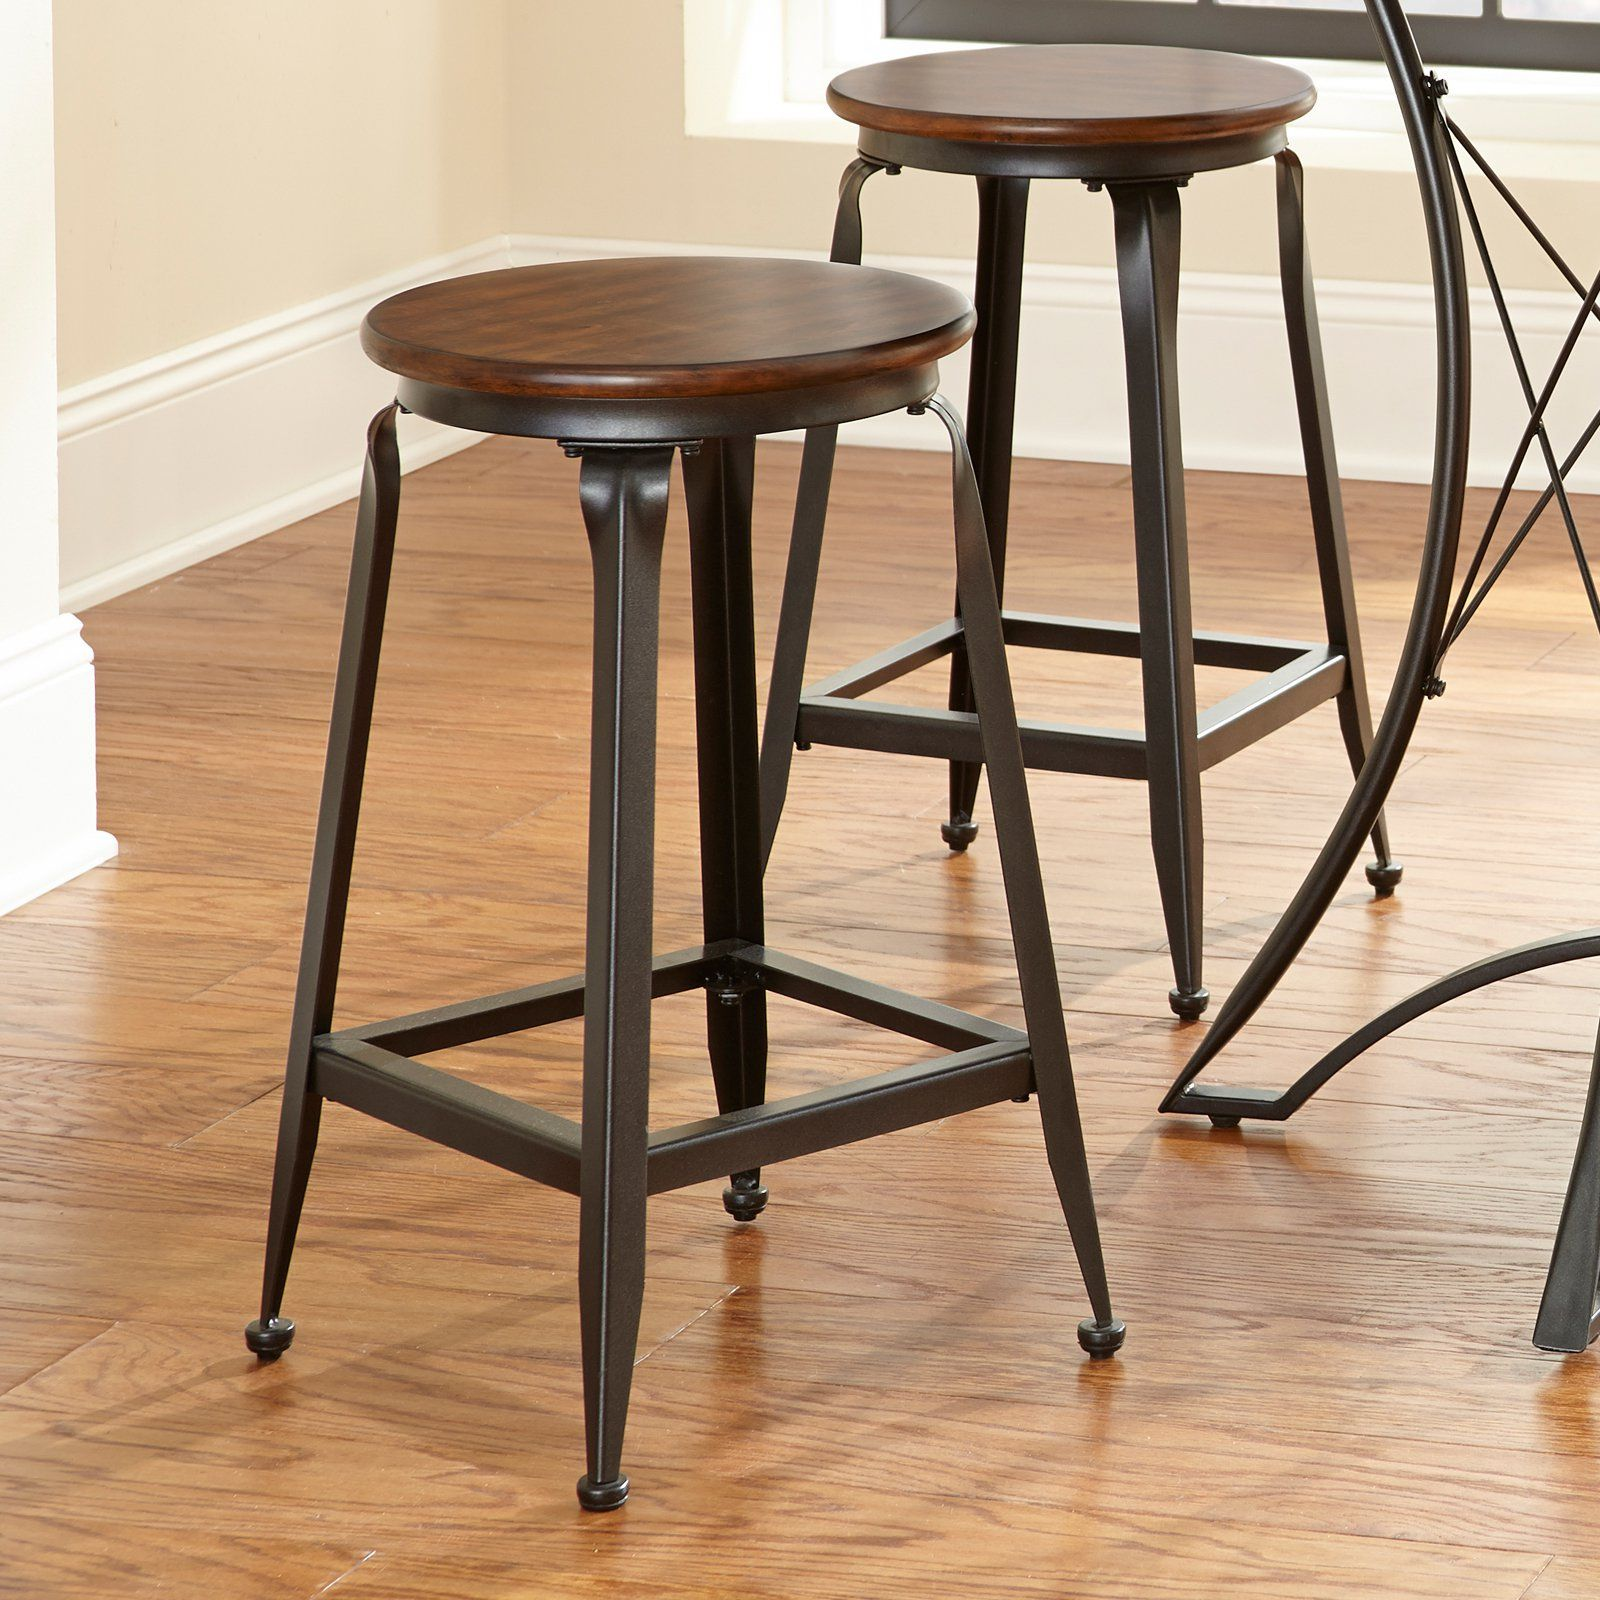 20 33 Inch Bar Stool Modern Vintage Furniture Check More At